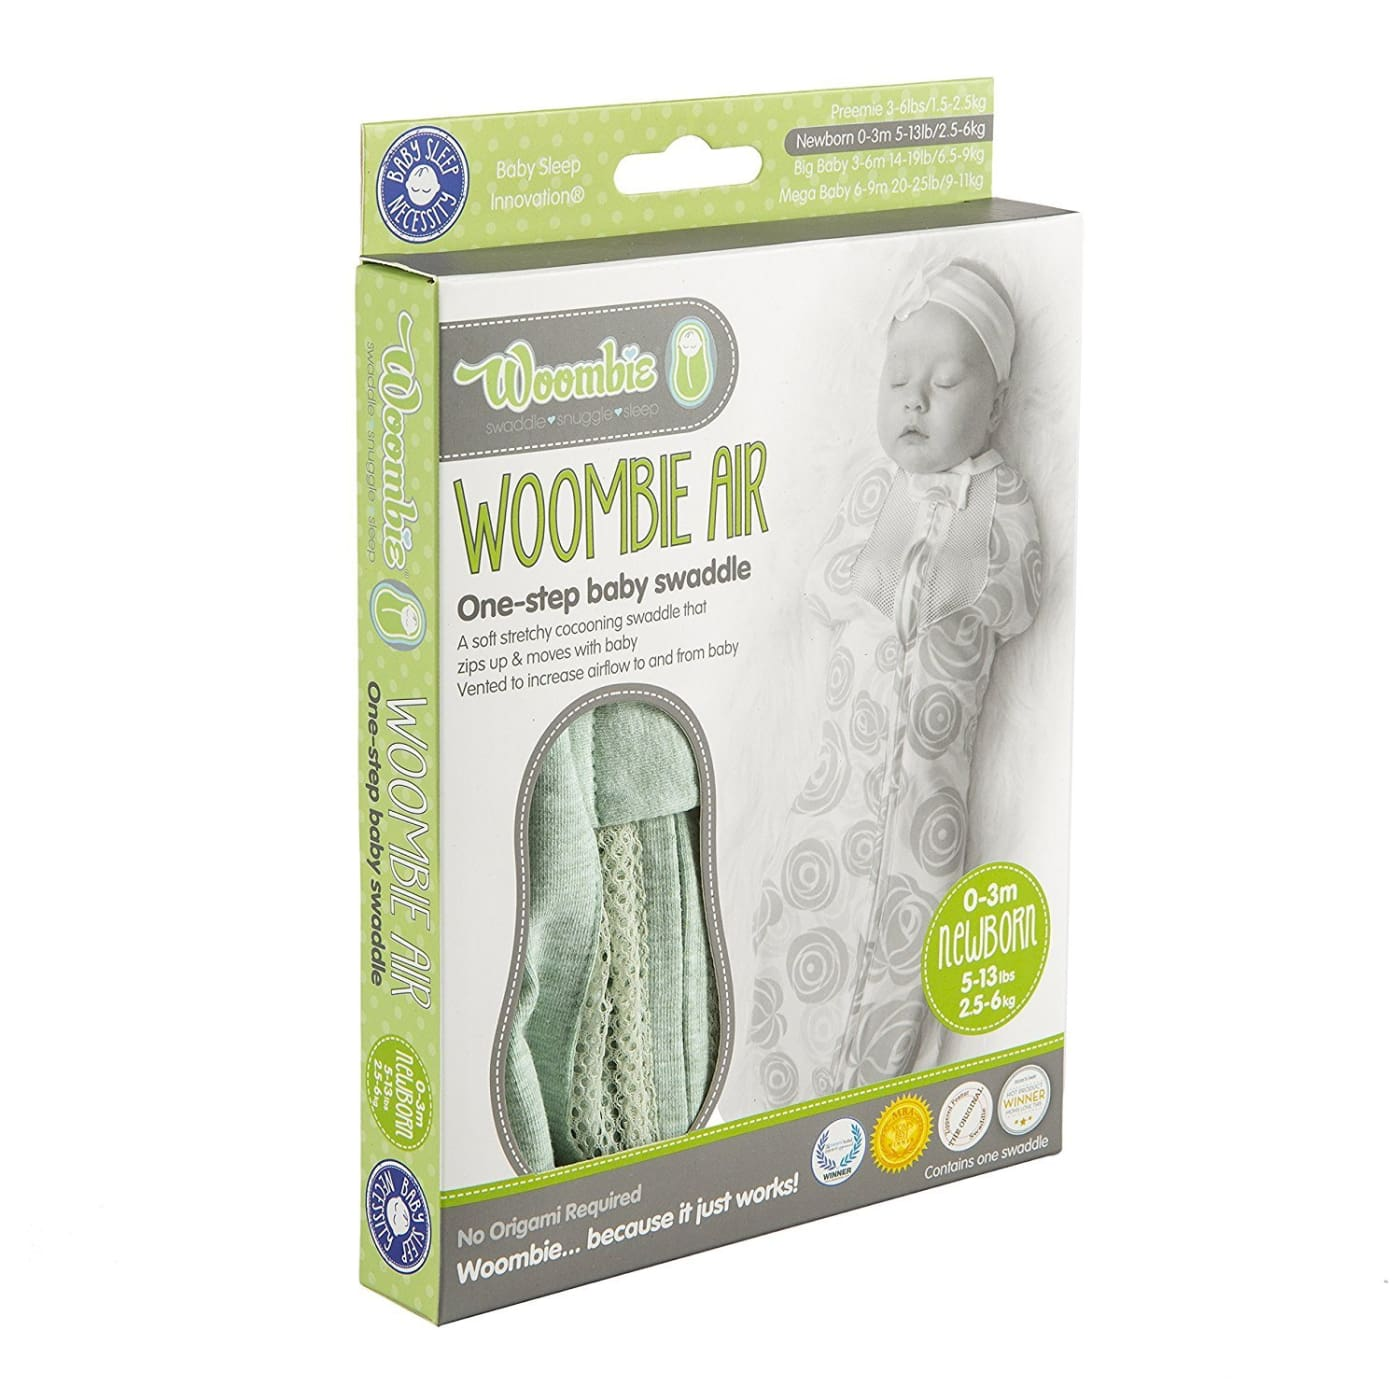 Woombie Air - Lime Sorbet Newborn 0-3M/2.5-6KG - NURSERY & BEDTIME - SWADDLES/WRAPS